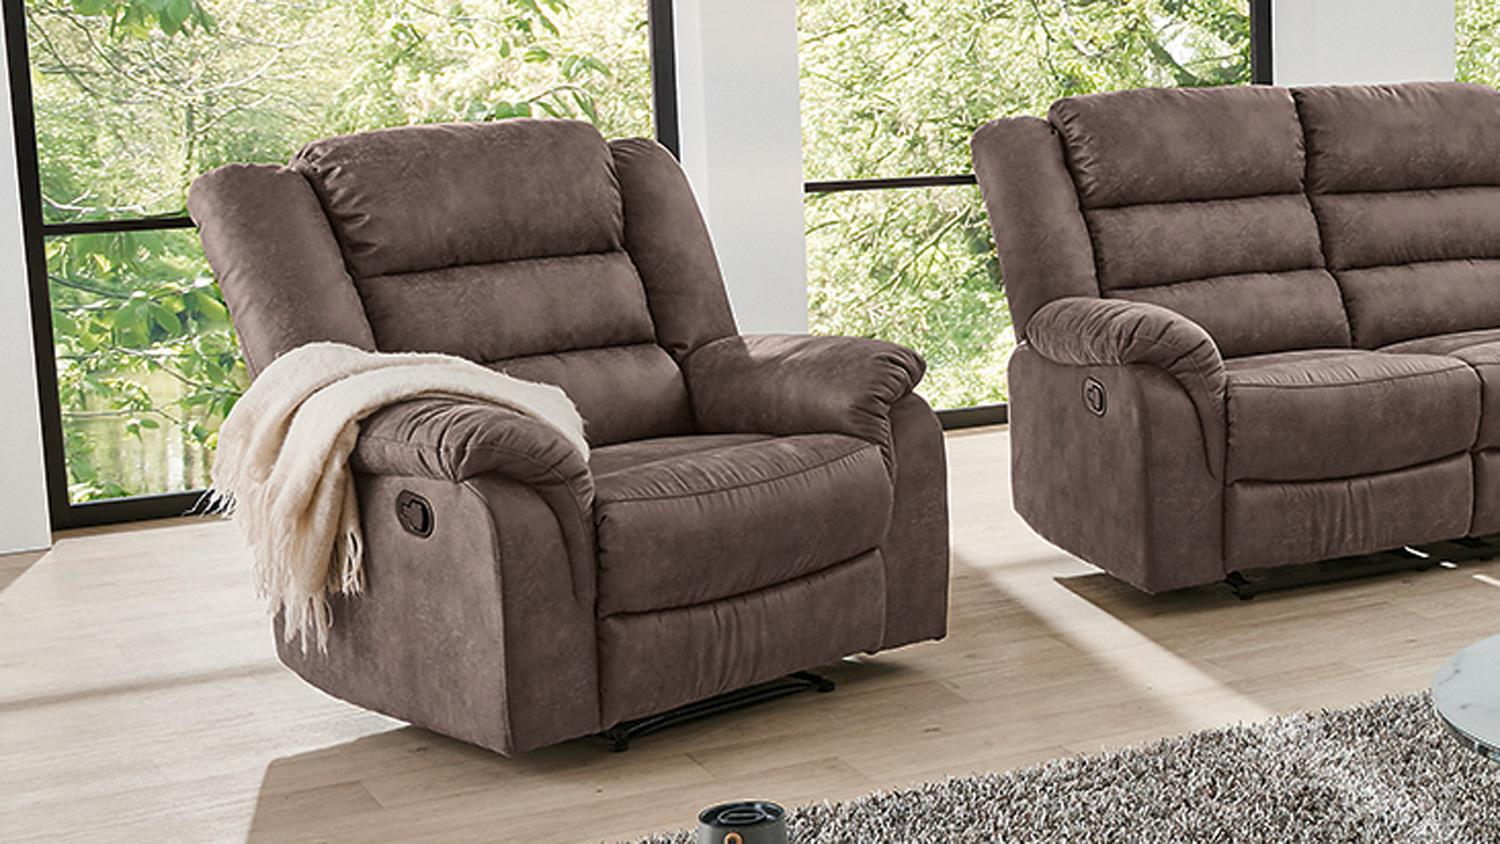 Relaxsessel Microfaser Bezug Fernsehsessel Cleveland Sessel Sofa Relaxsessel Mit Funktion In Braun